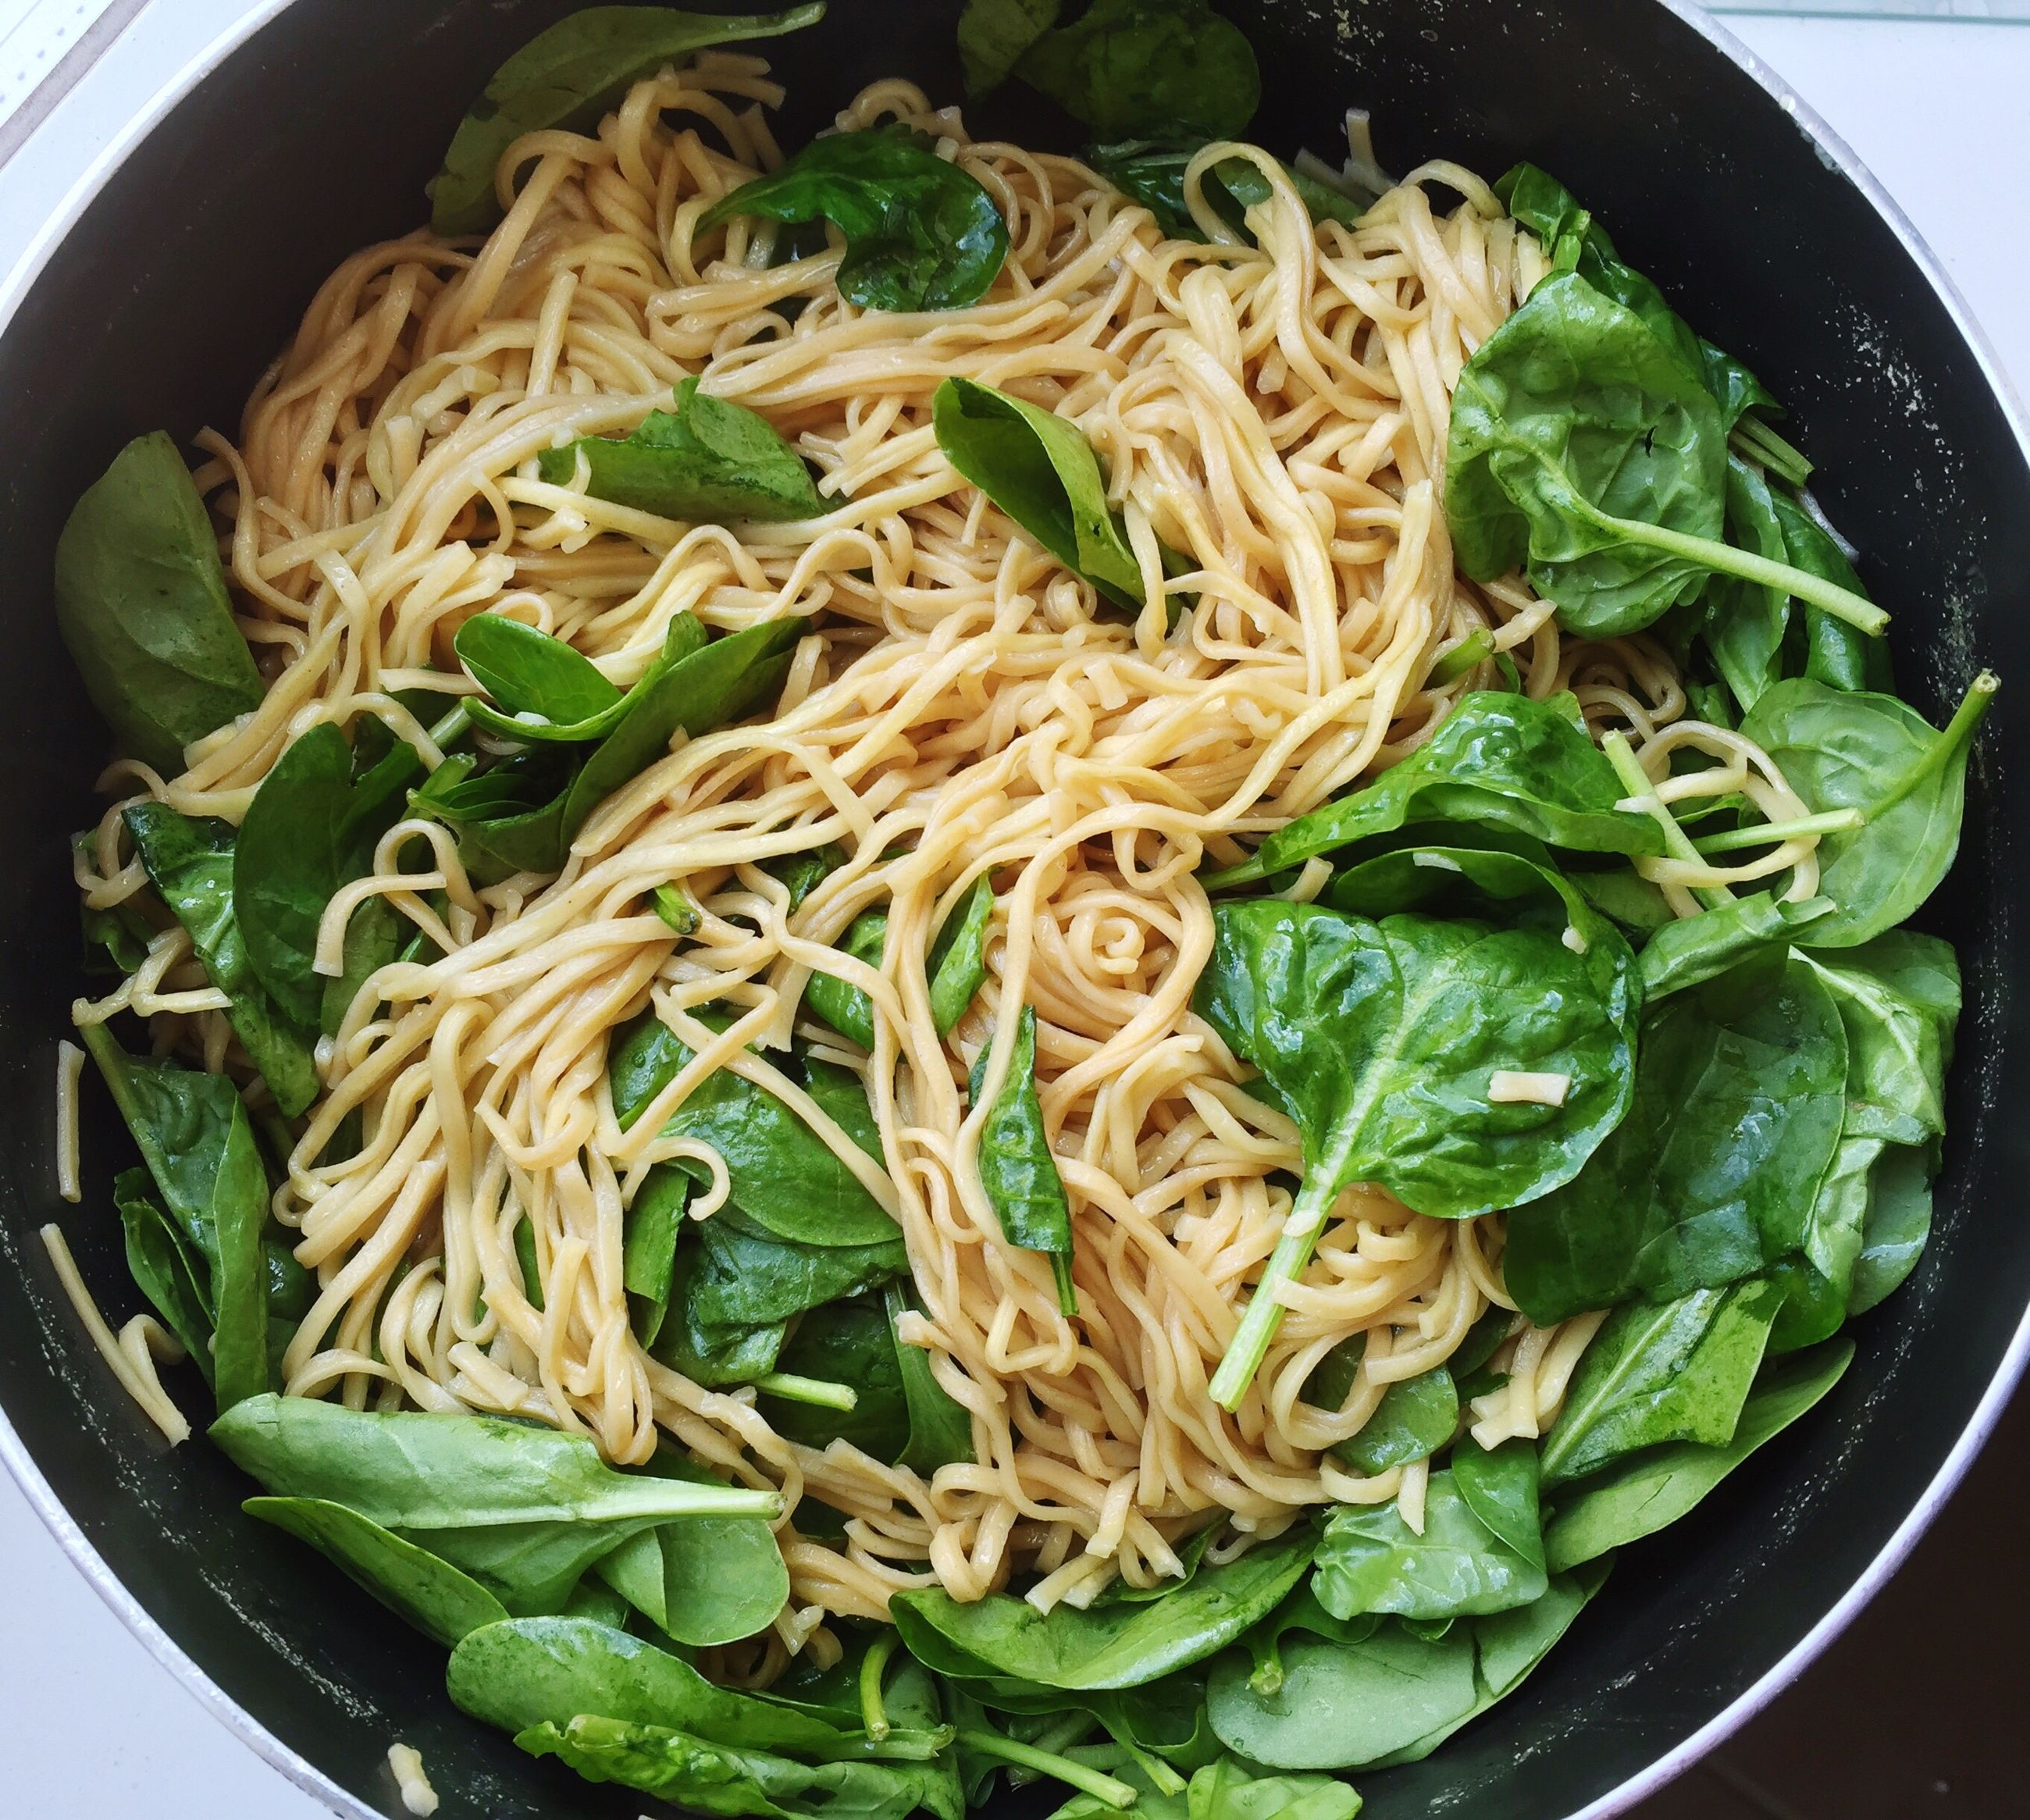 food, freshness, healthy eating, ready-to-eat, noodles, close-up, meal, still life, bowl, serving size, healthy lifestyle, indulgence, no people, broccoli, green color